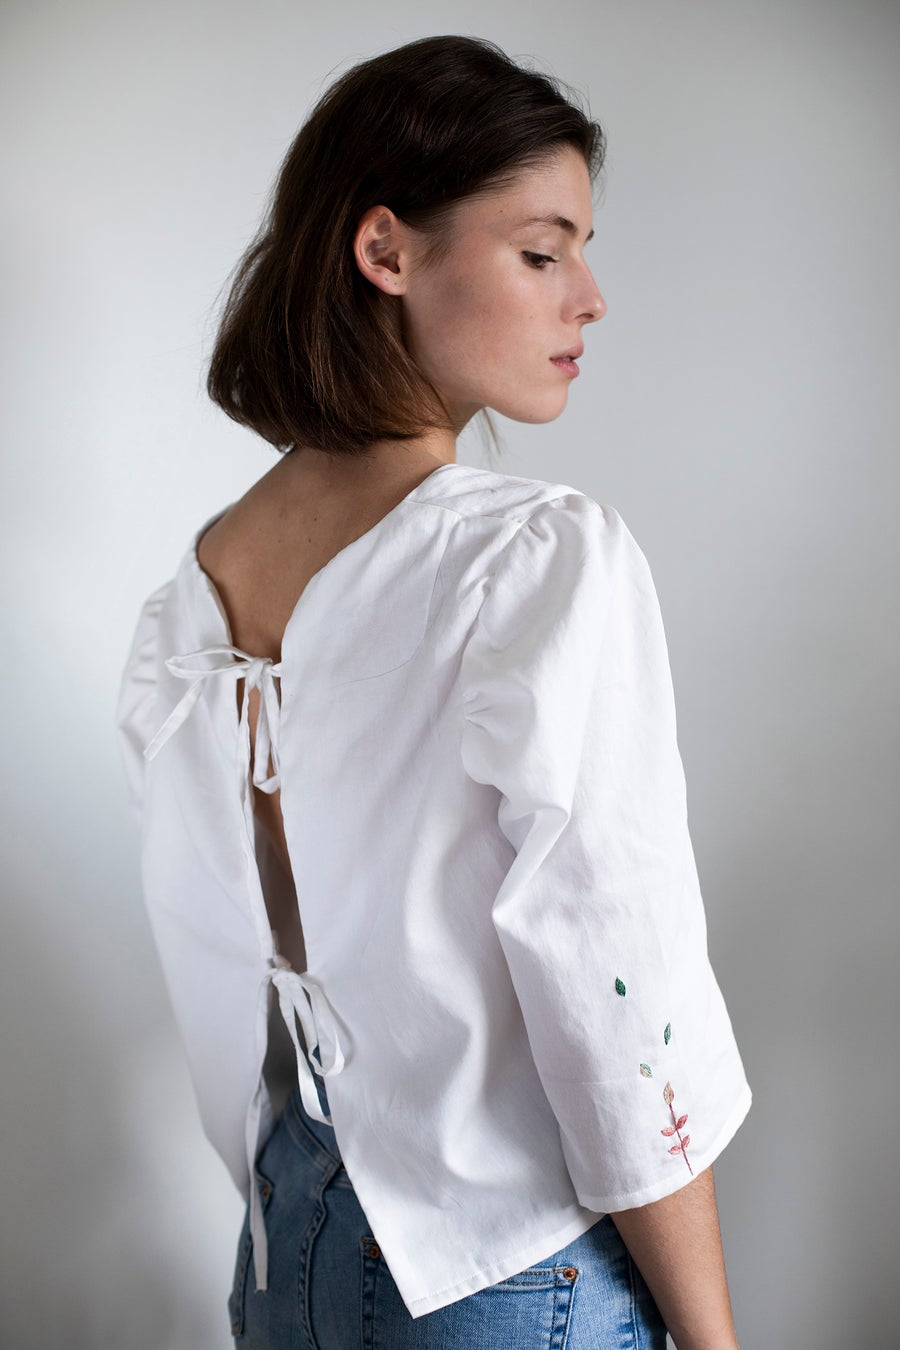 Image of Pre-order: Margareth shirt - 2nd Damaja designed shirt, made of 100% organic cotton in Berlin